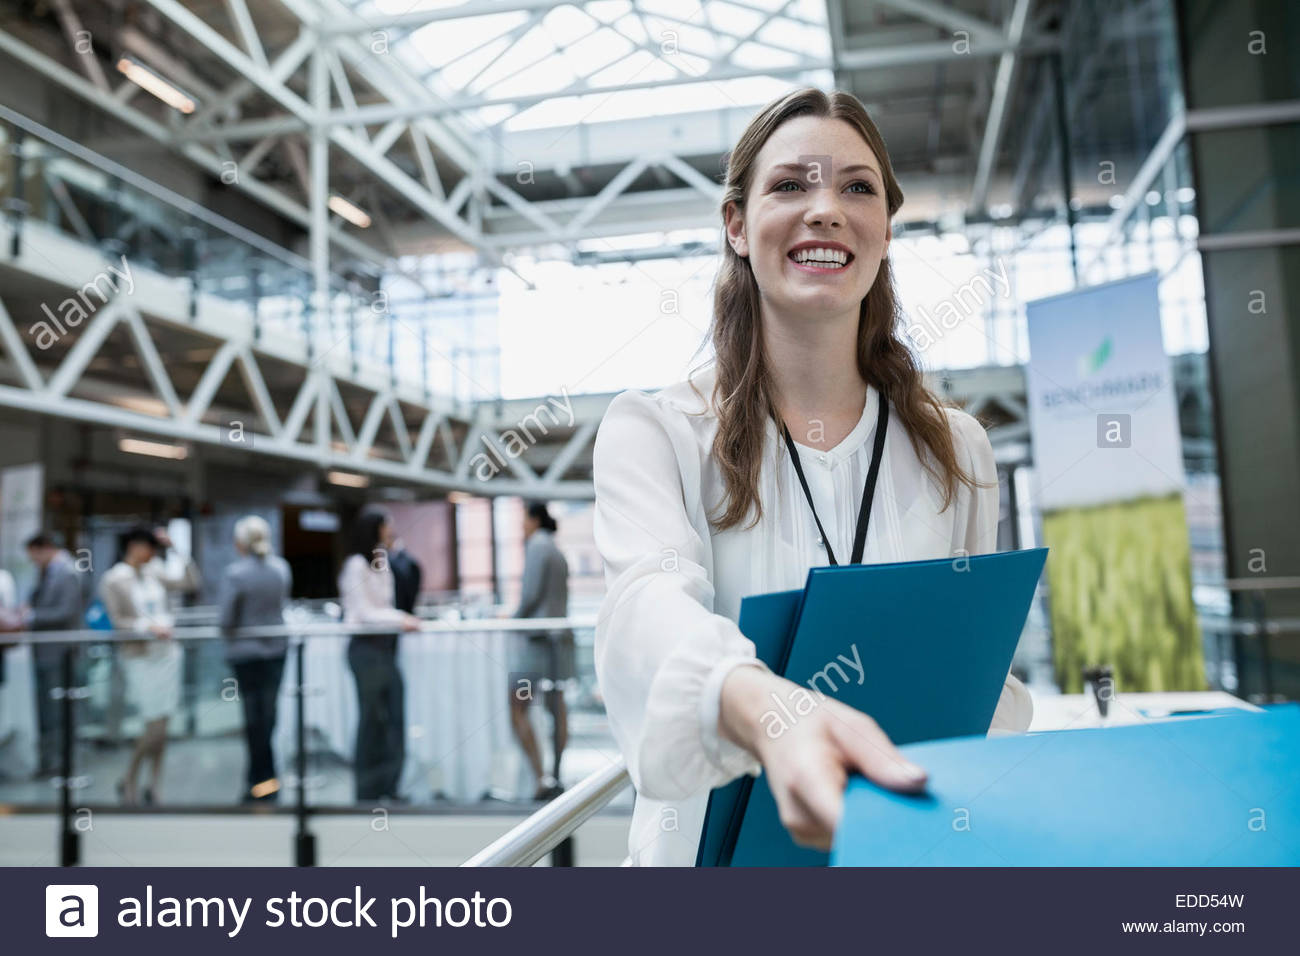 Businesswoman handing out folders at conference - Stock Image